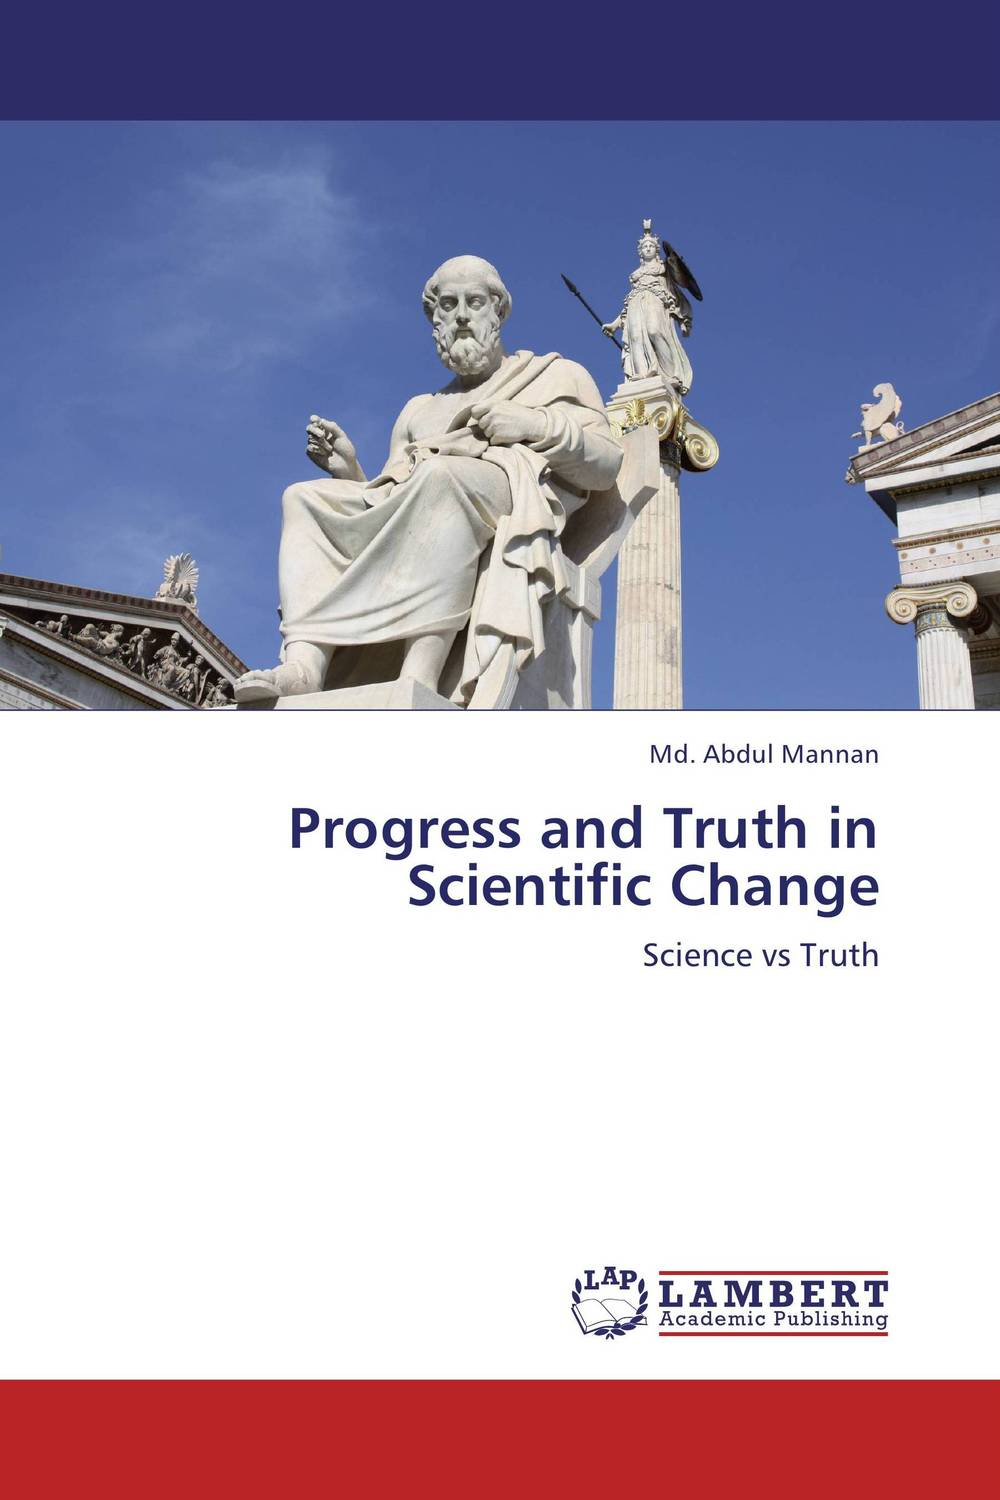 Progress and Truth in Scientific Change voluntary associations in tsarist russia – science patriotism and civil society